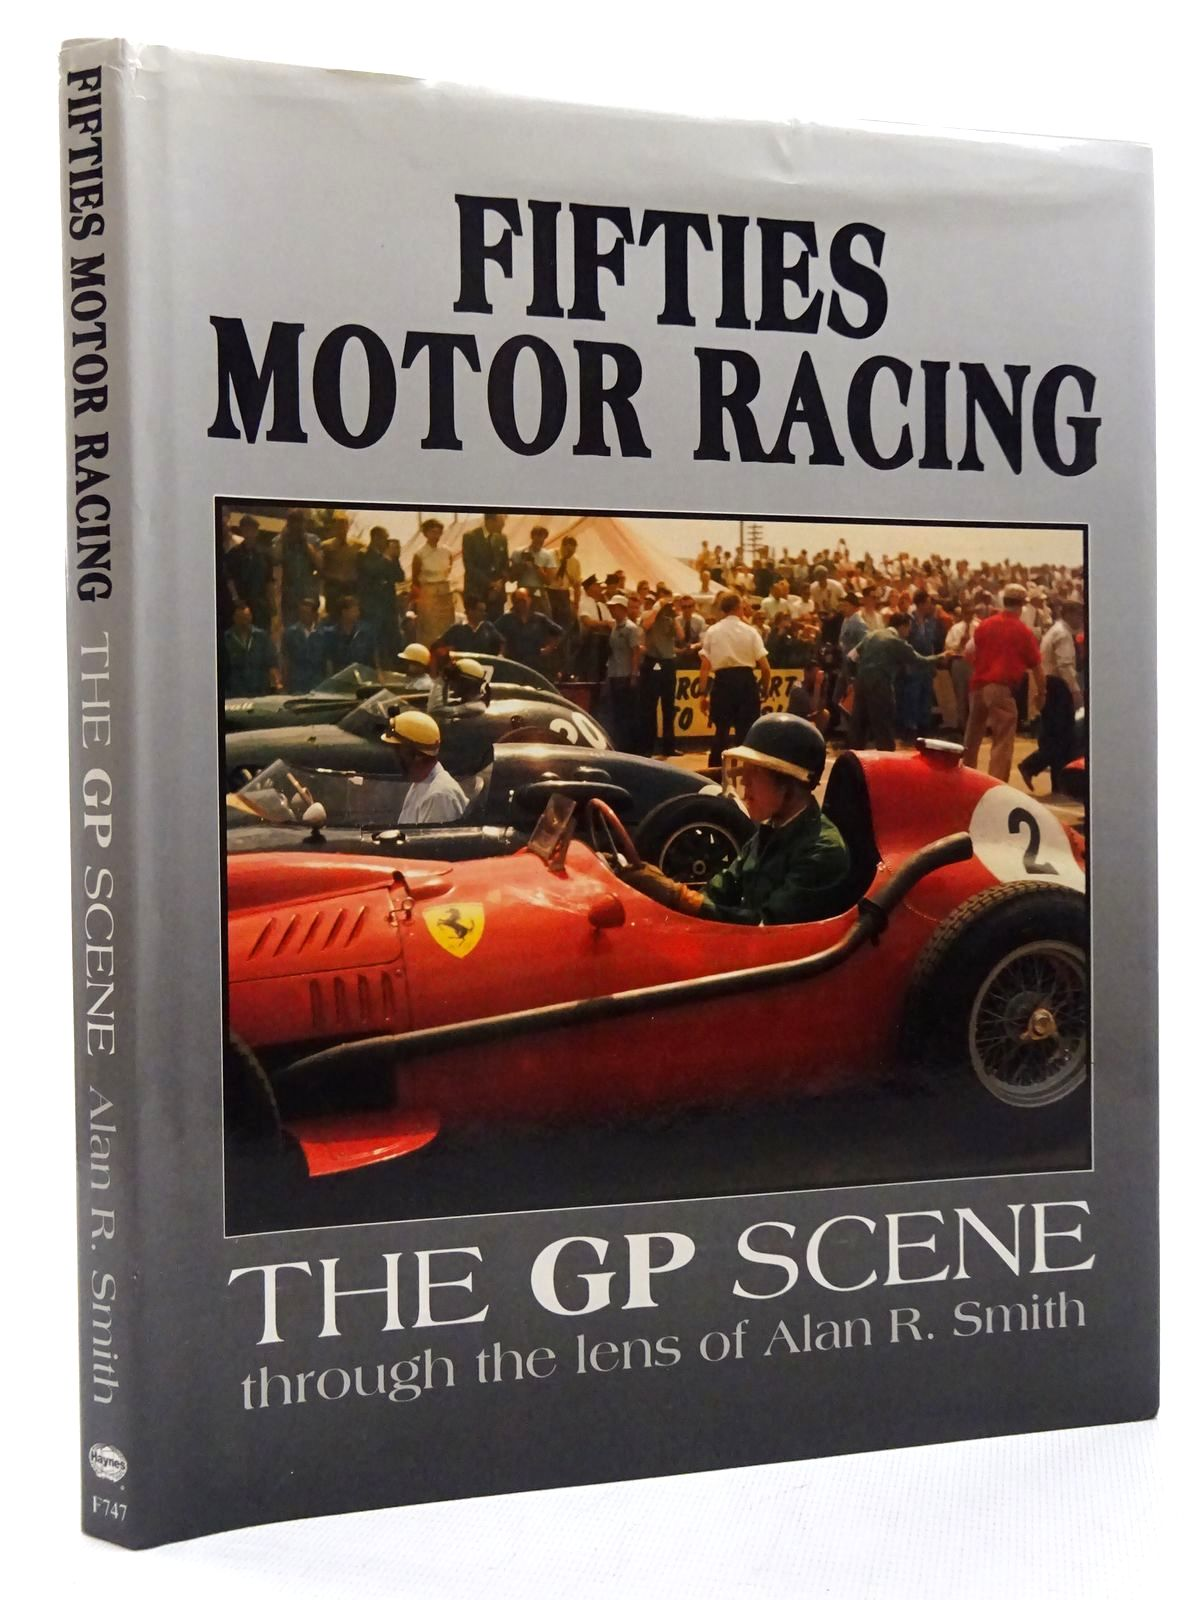 Photo of FIFTIES MOTOR RACING written by Smith, Alan R. published by Haynes Publishing Group, Foulis (STOCK CODE: 1610409)  for sale by Stella & Rose's Books